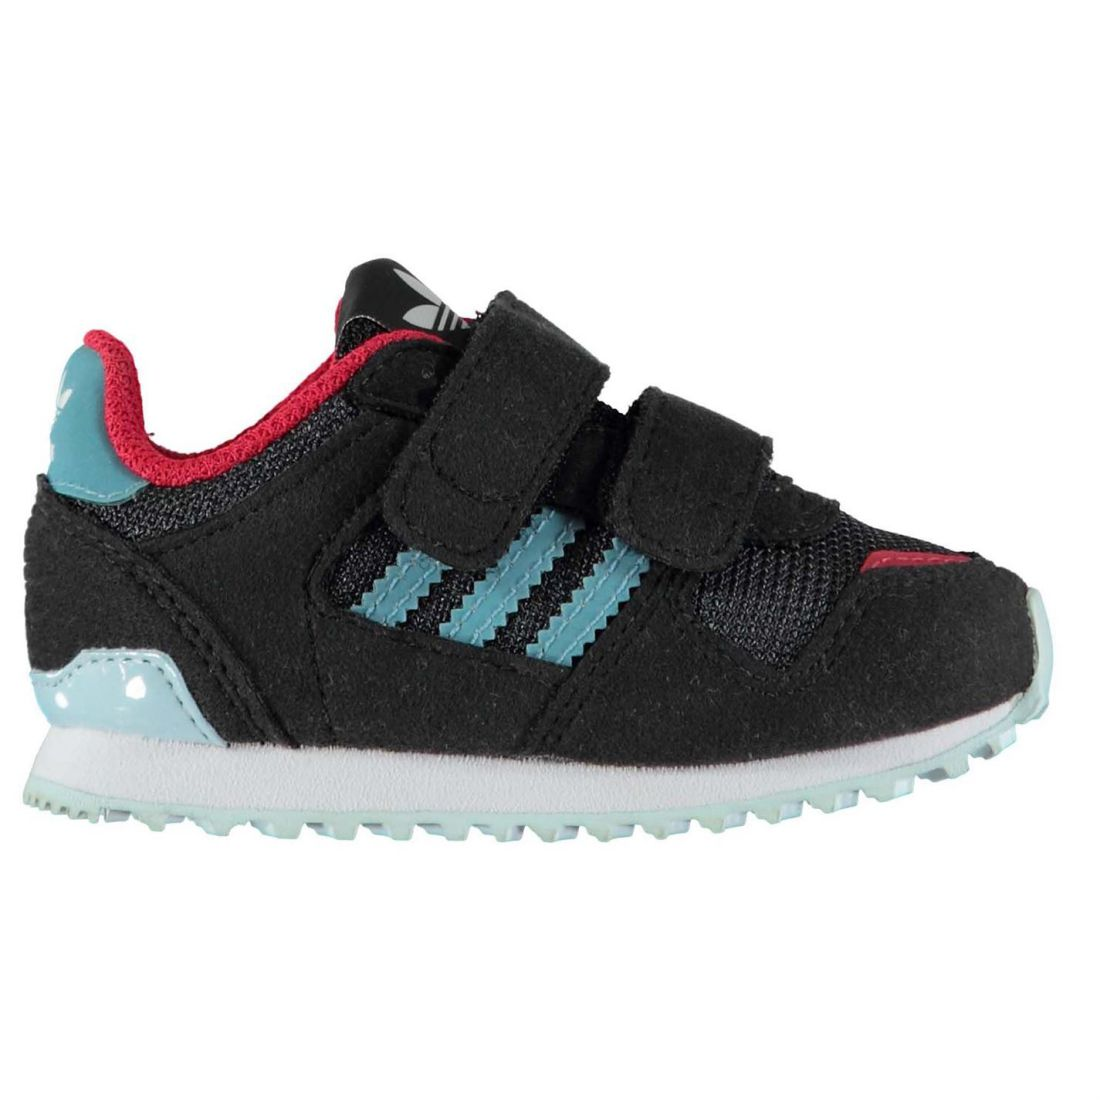 386db3f224889 adidas Boys ZX 700 CF Trainers Baby Shoes Footwear Touch and Close ...